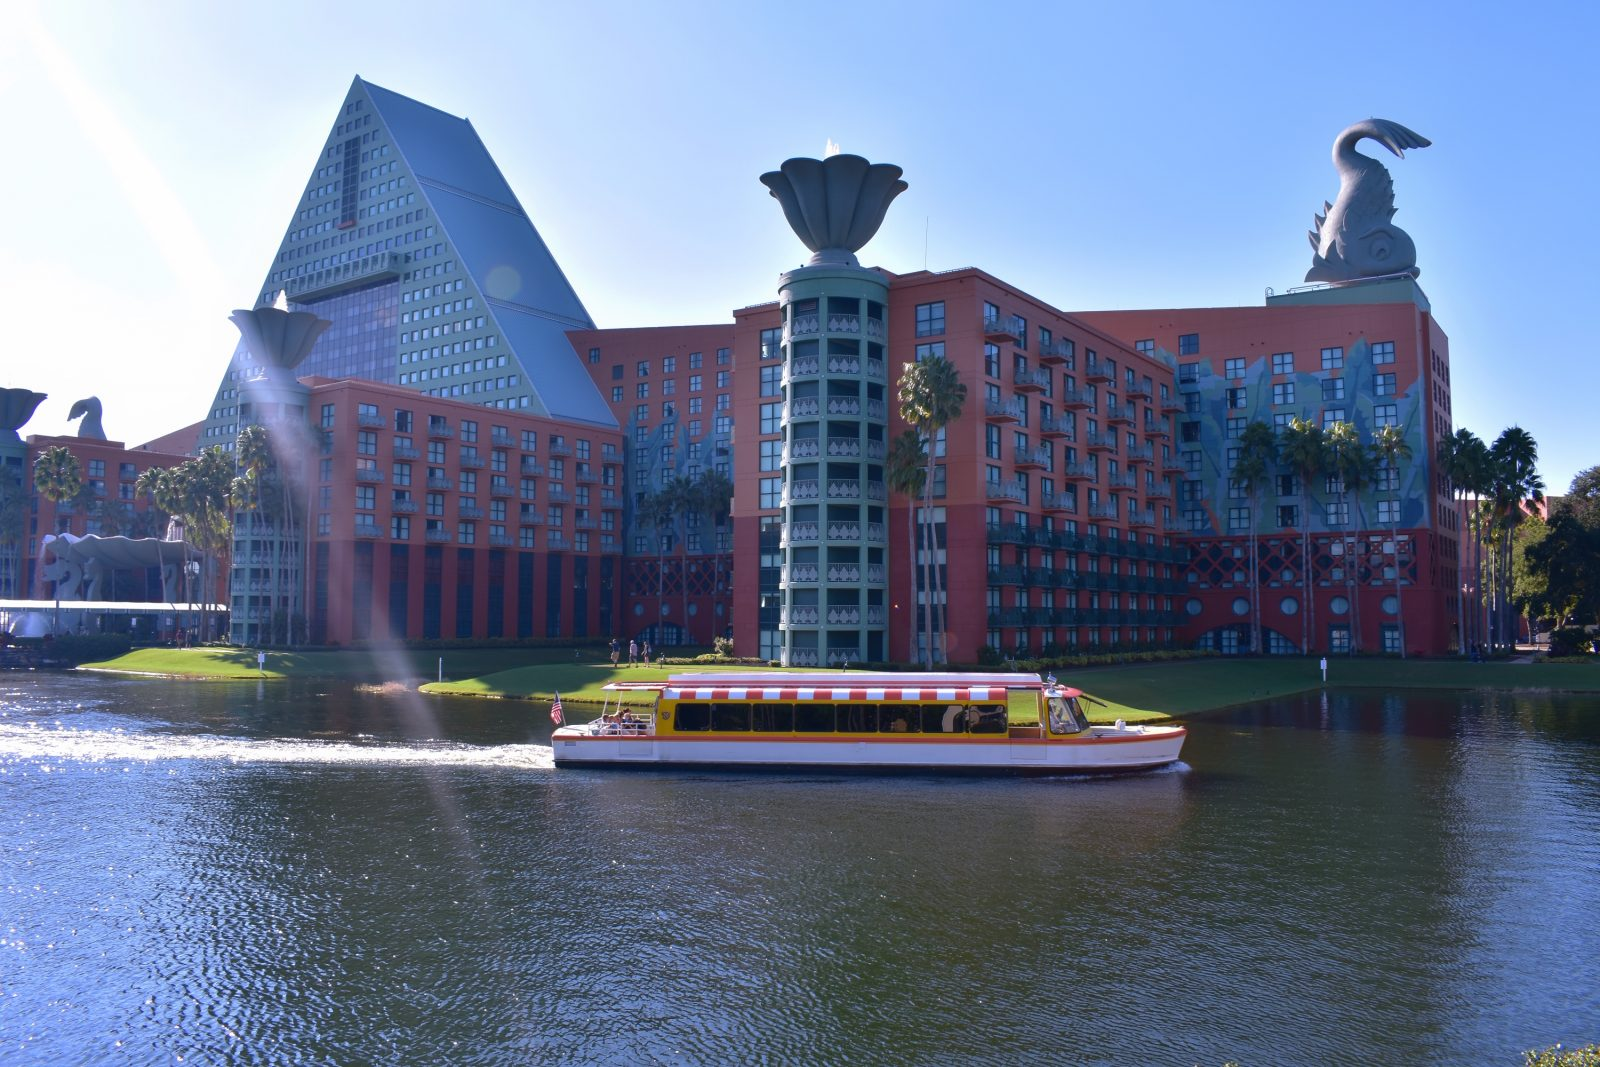 boat ride to all the resorts is one of the more fun and free things to do at Disney World